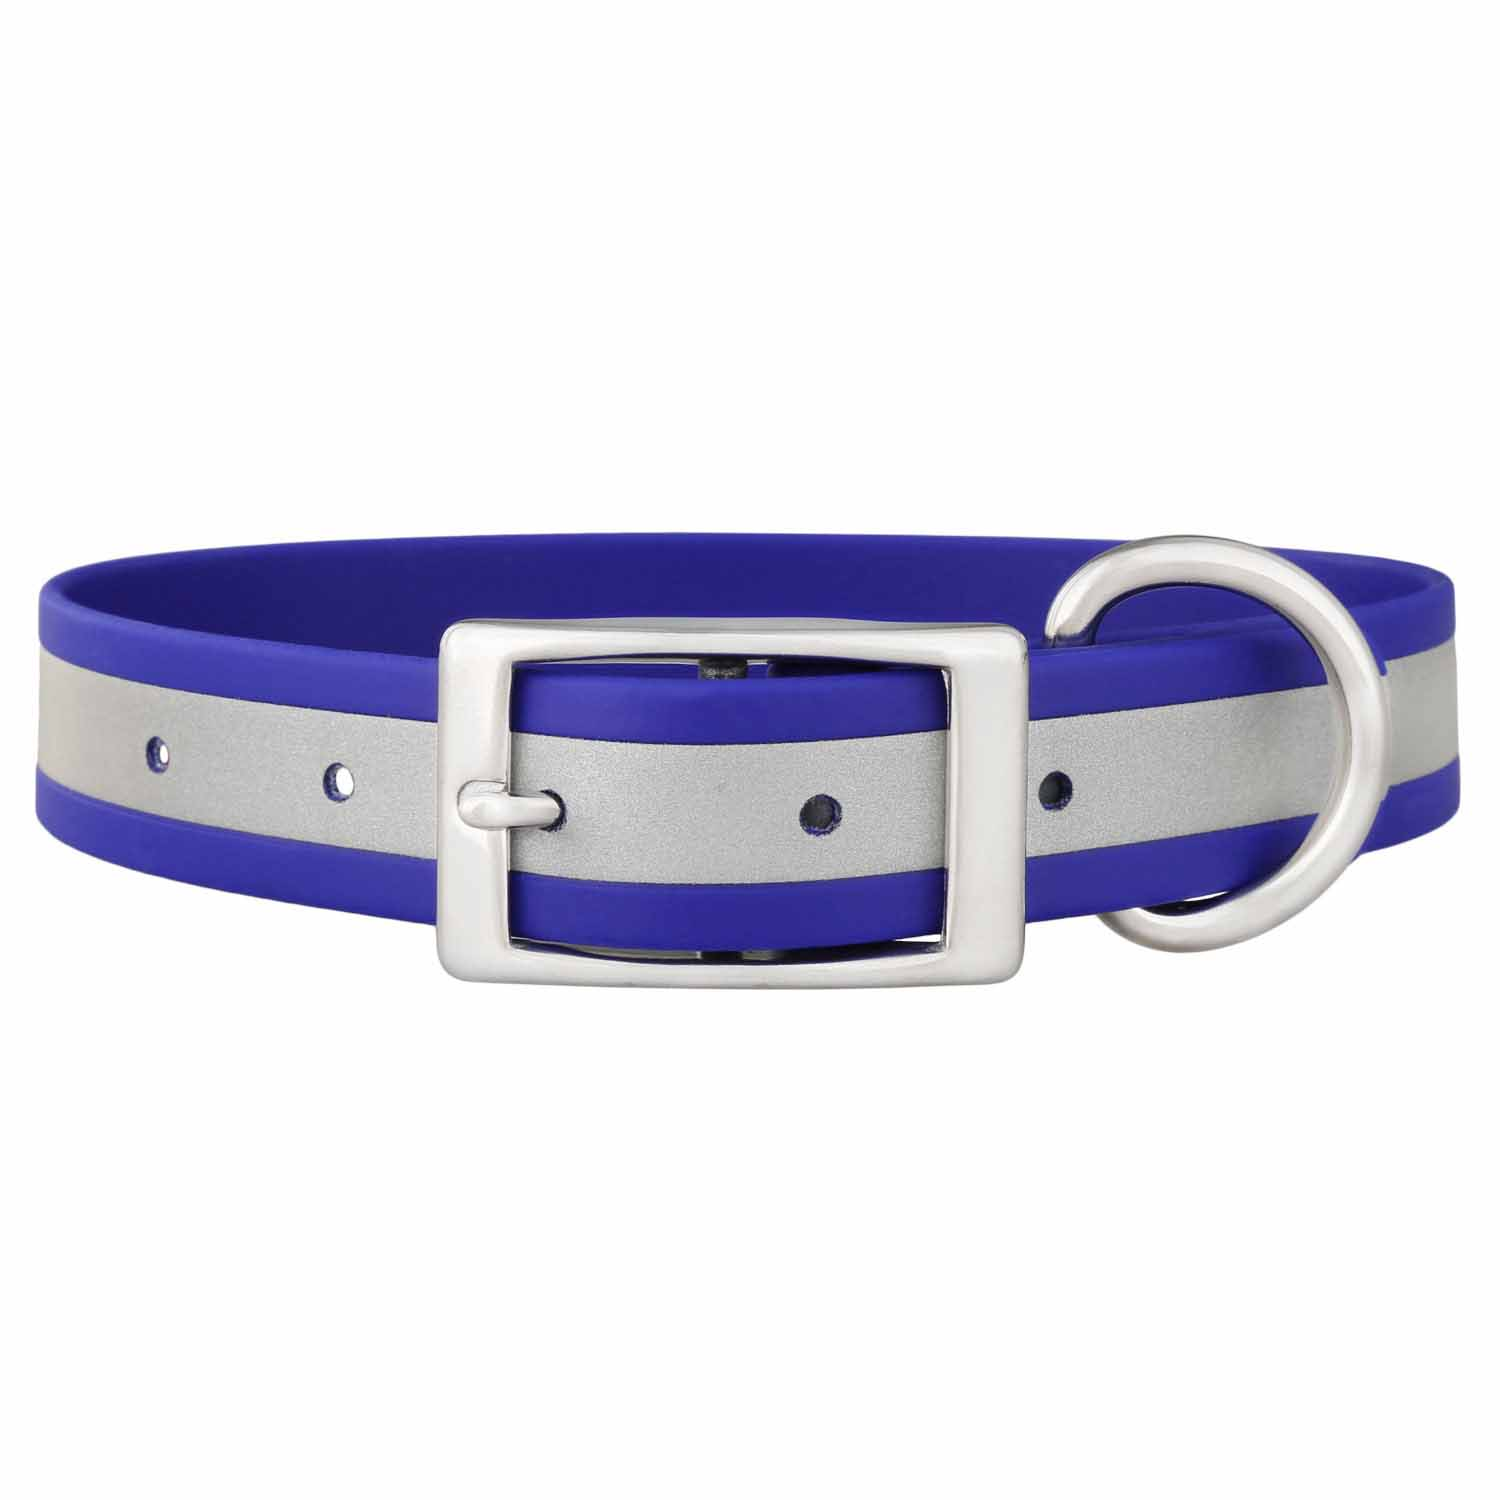 Reflective Waterproof Dog Collar Blue Buckle View